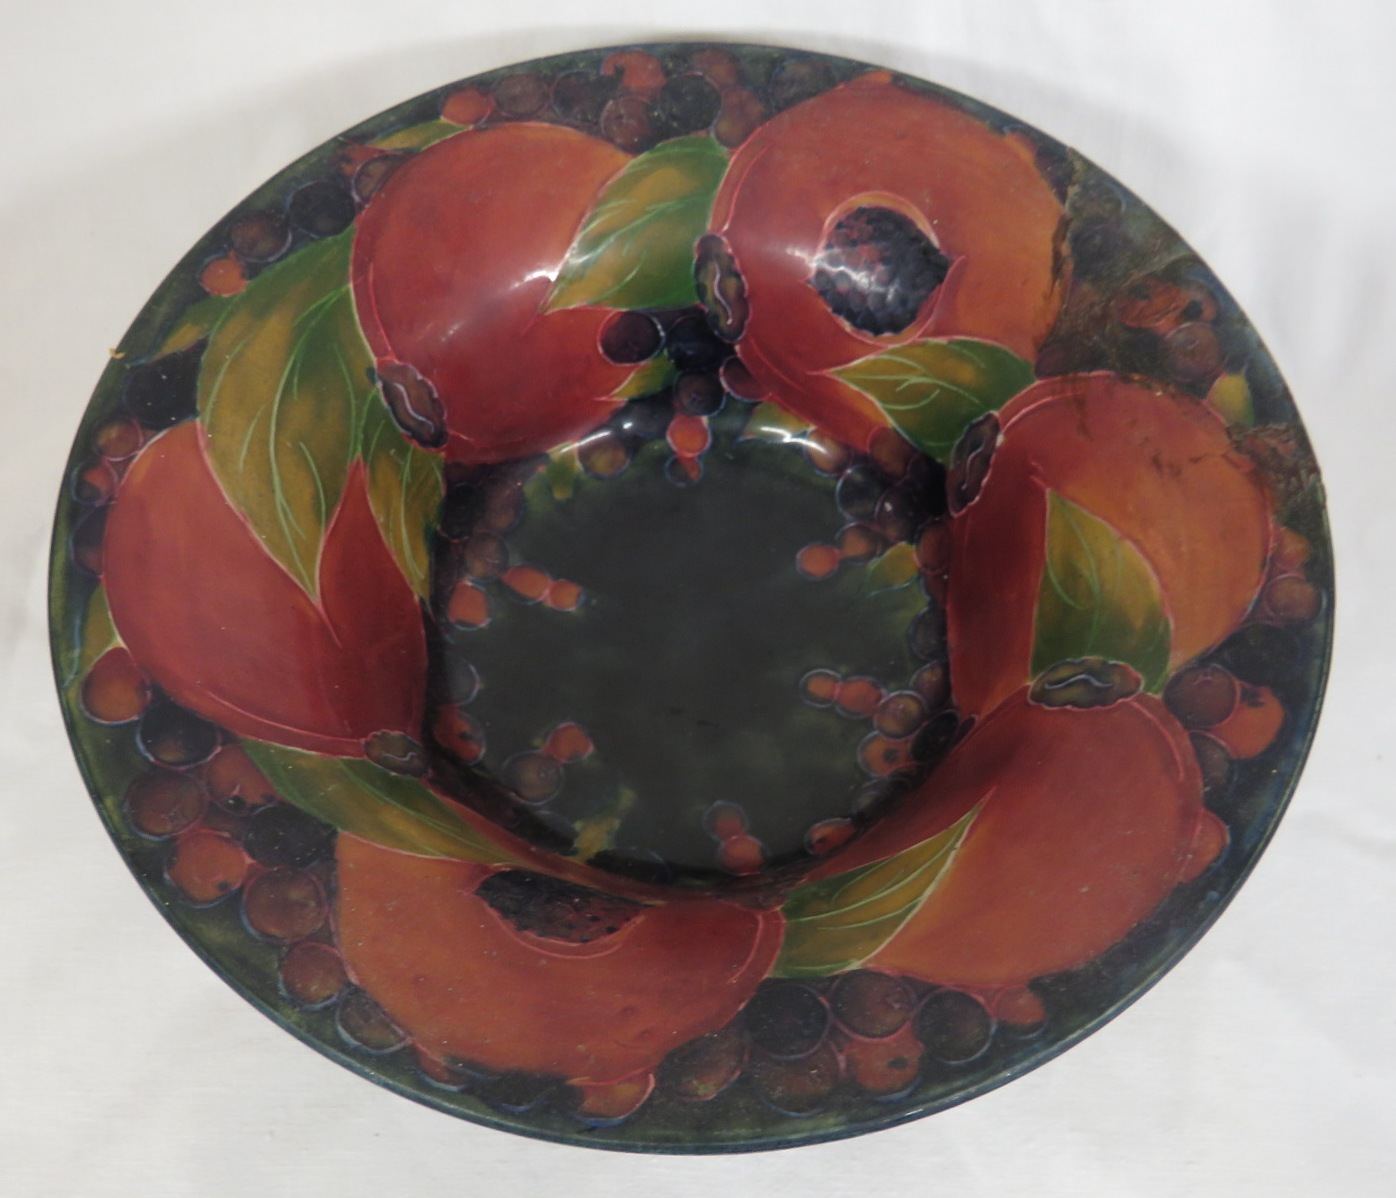 Lot 91 - Moorcroft pomegranate bowl, height 8cm diameter 21cm, signature to base and stamped MOORCROFT